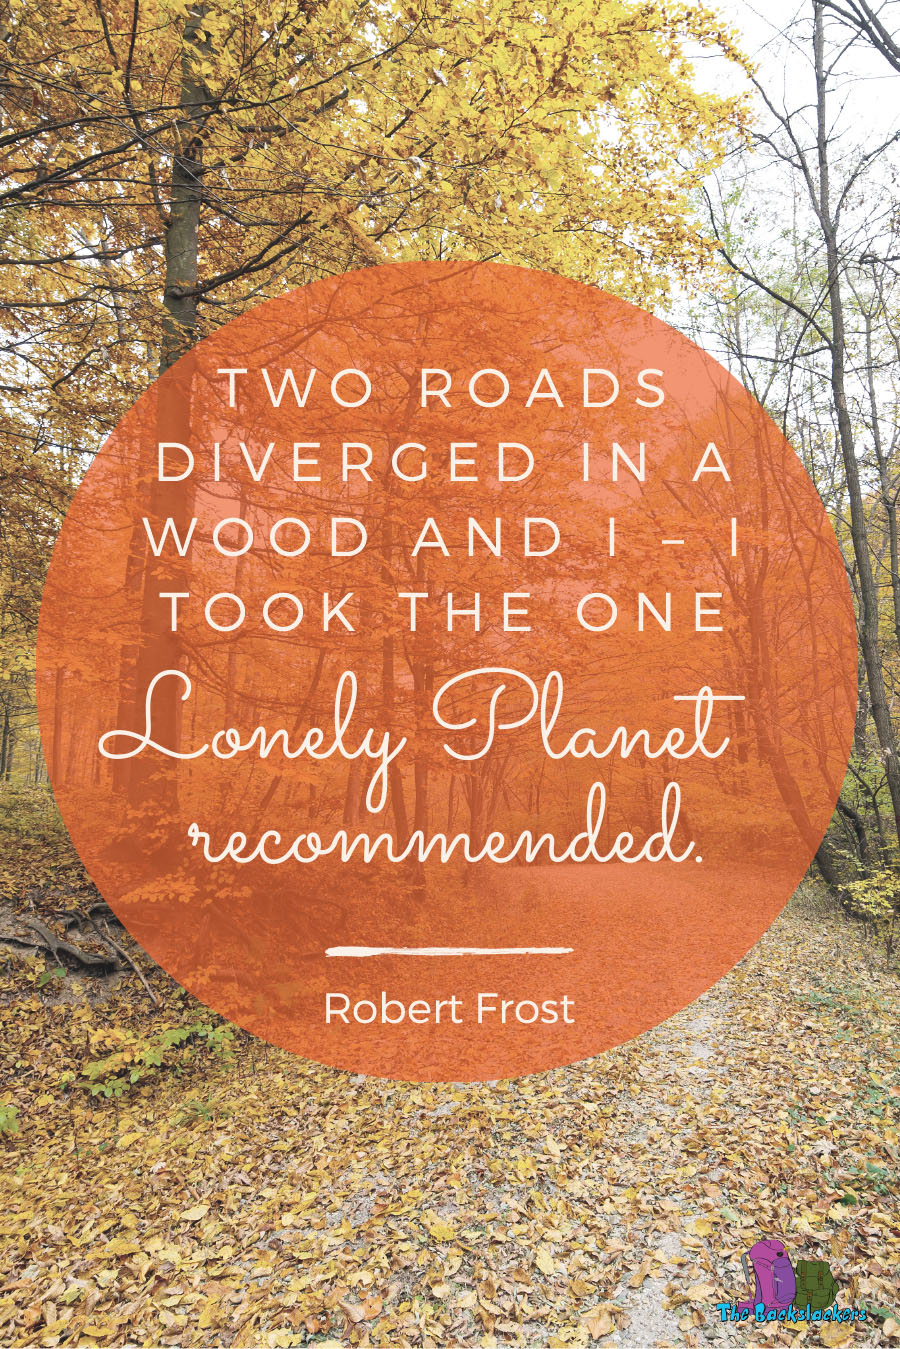 Two Roads Diverged In A Wood And I – I Took The One Lonely Planet Recommended. – Robert Frost | 10 Travel Quotes for Backpackers (Like You've Never Heard Them Before)